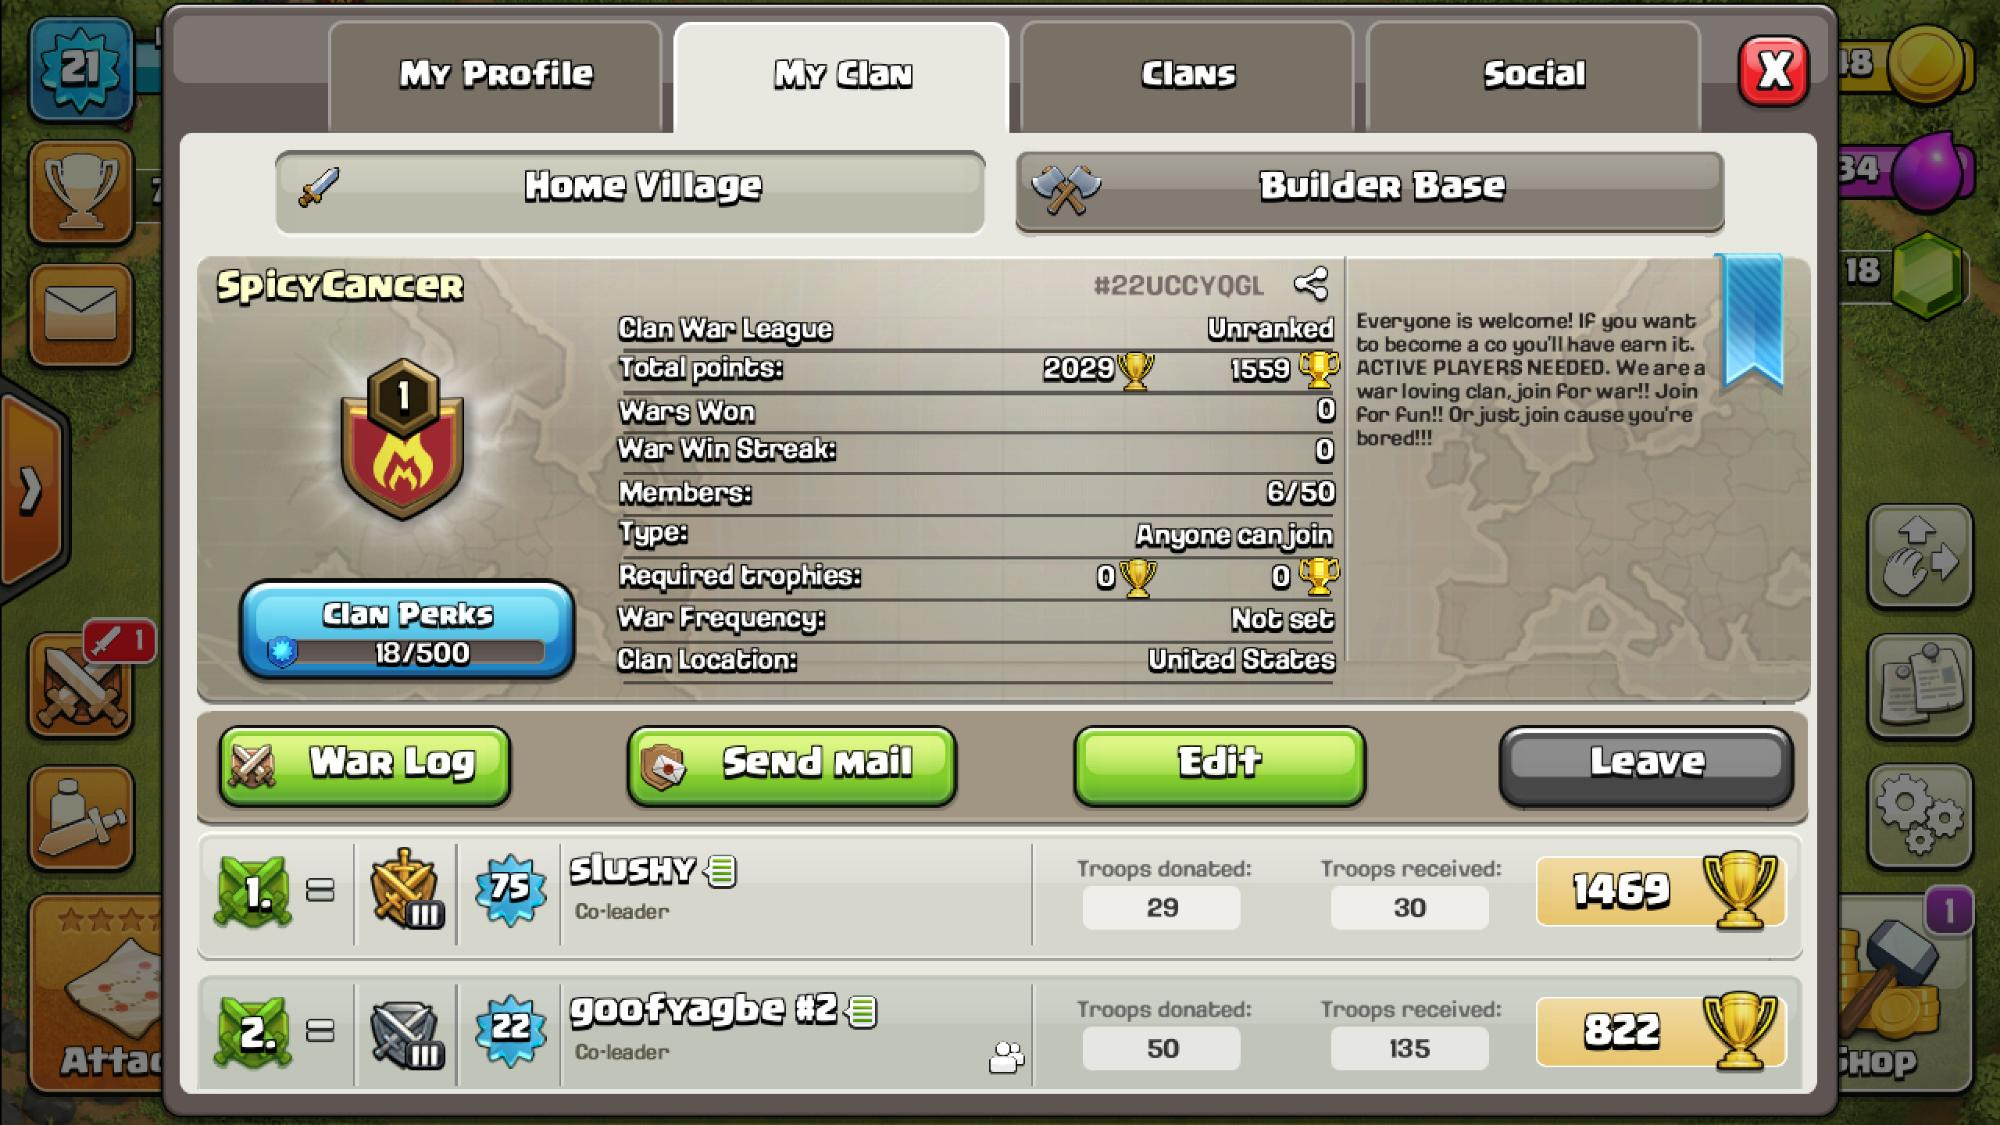 I need more members in my clan we have a few hours left in this war and our people arent active enough